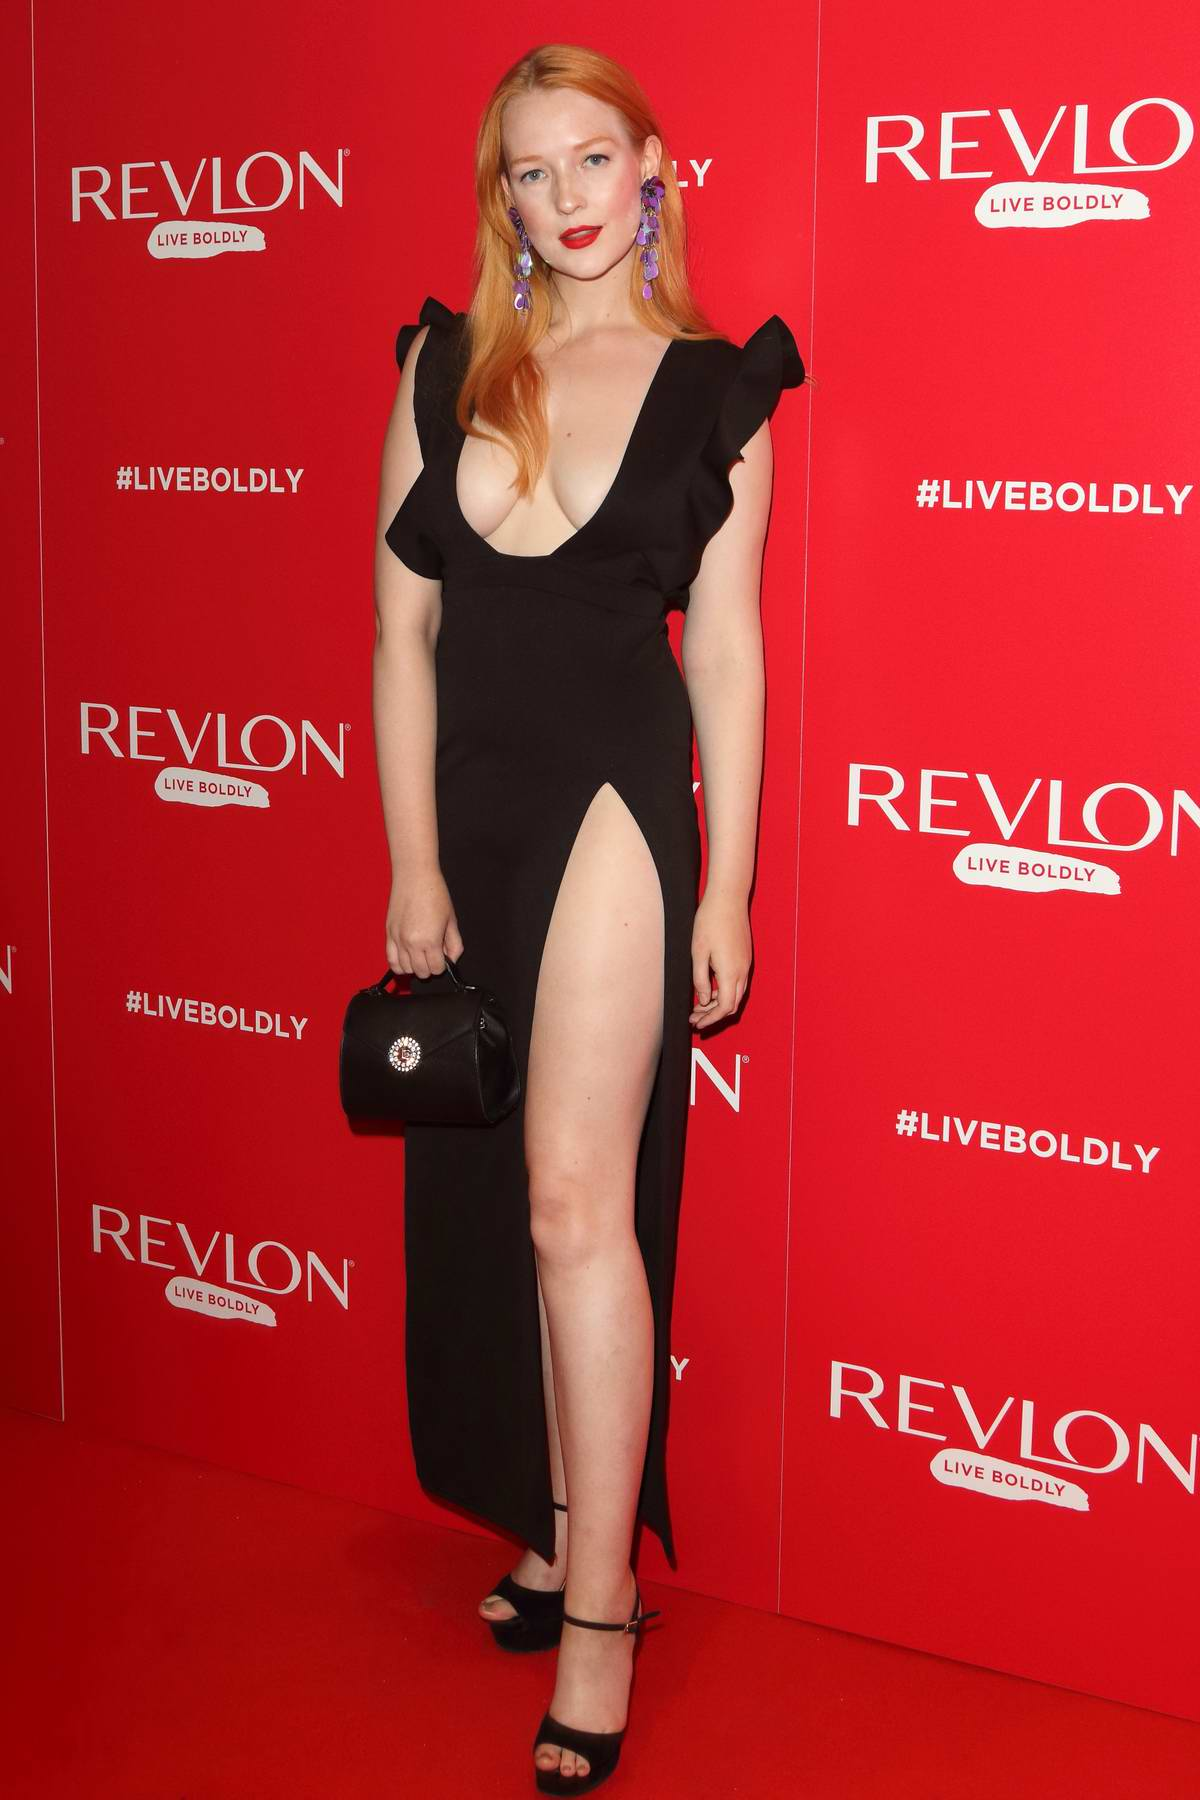 Victoria Clay attends Adwoa Aboah x Revlon - Live Boldly Party during London Fashion Week at Jack Solomons Club in London, UK